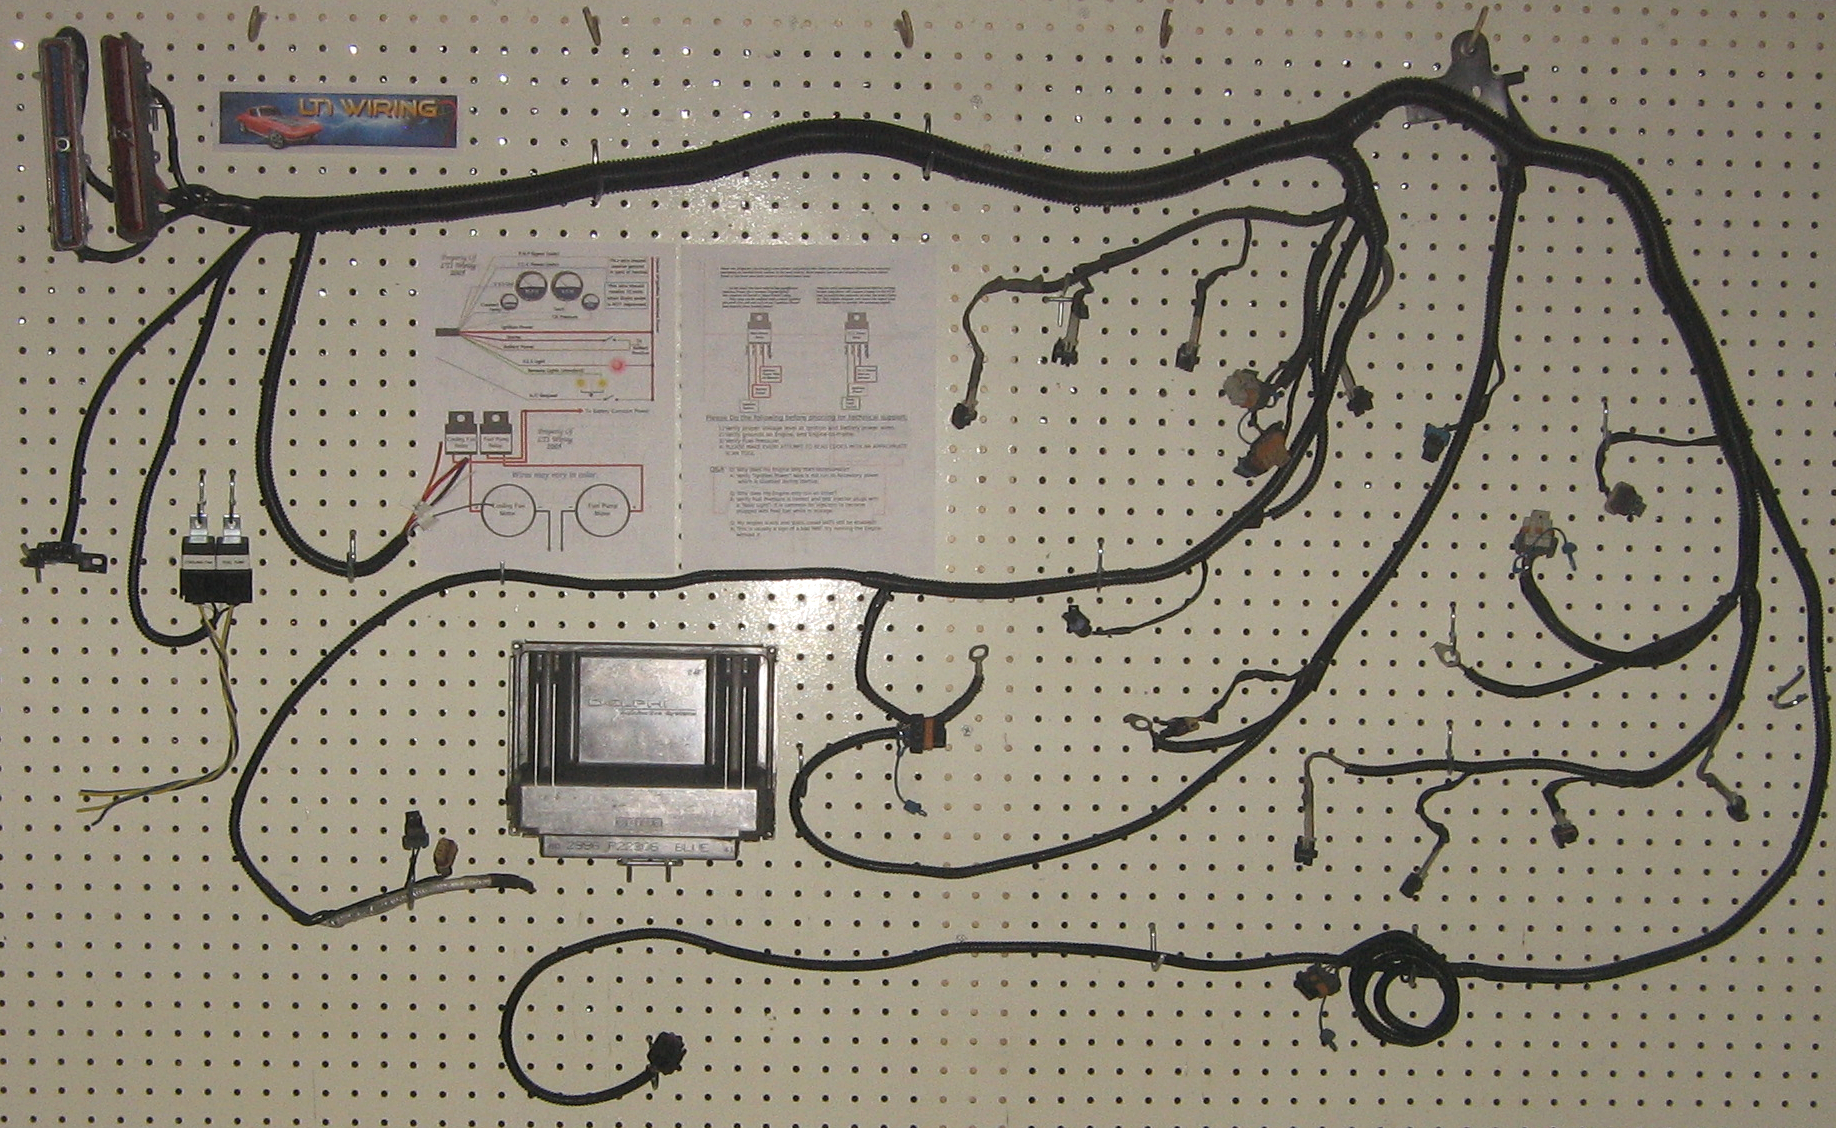 Standalone Wiring Harness Lt1 700r4 For Sale | Wiring Diagram on